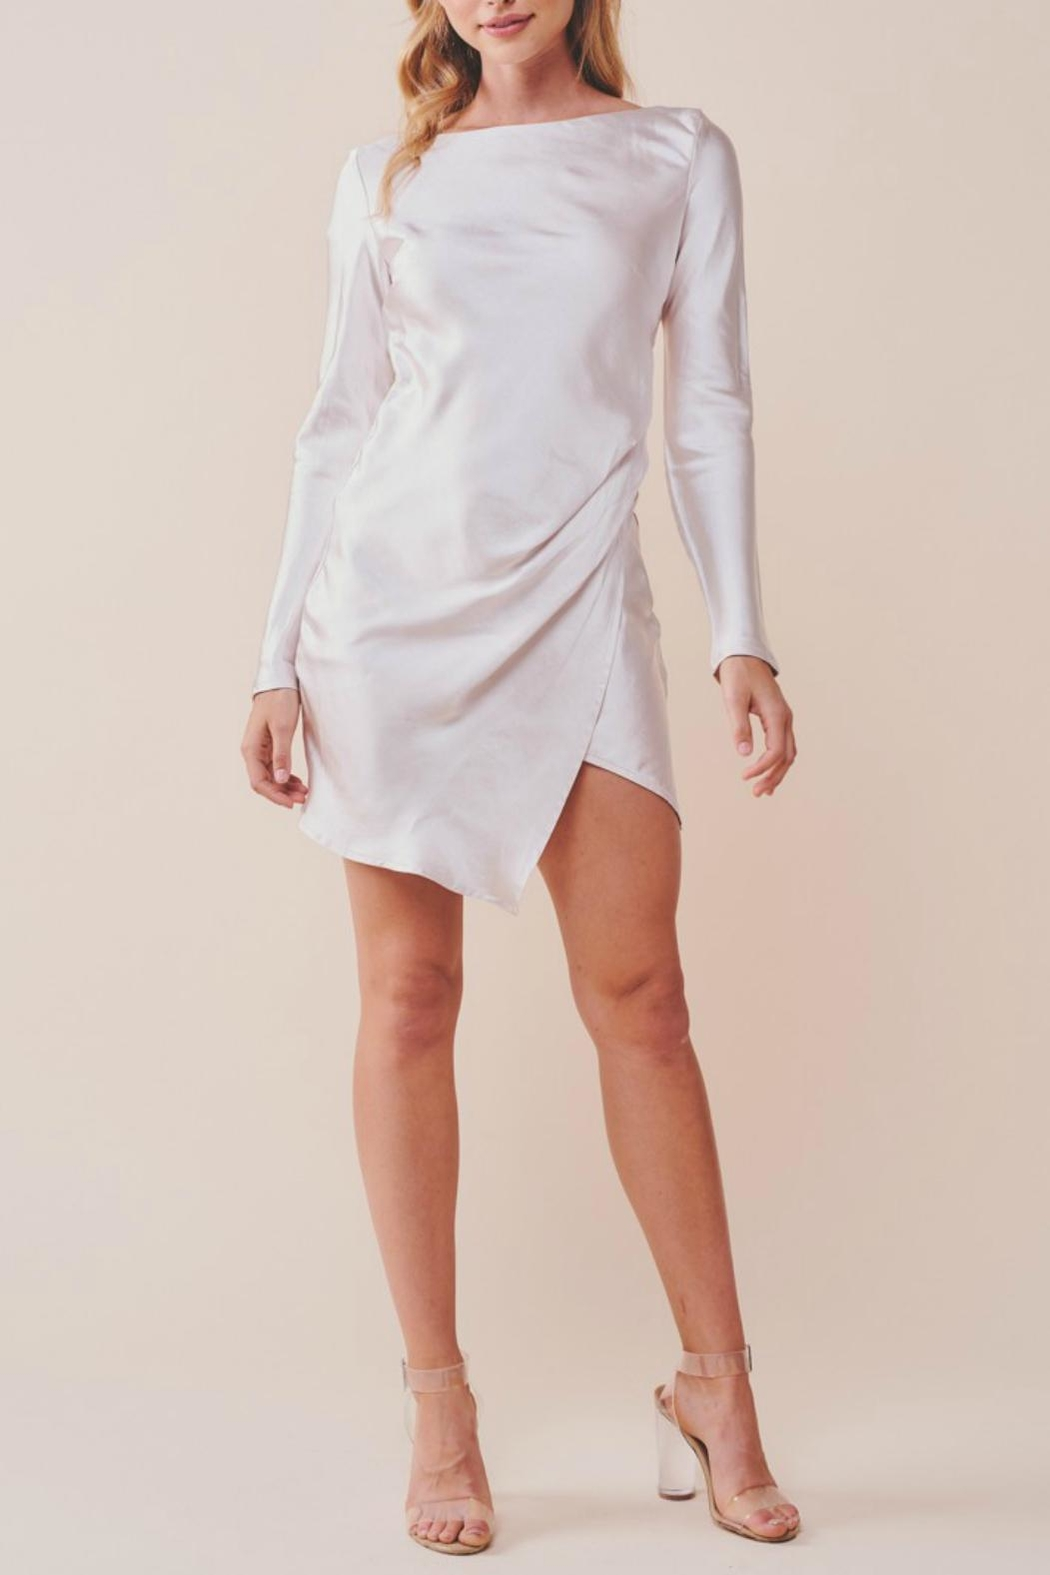 Pretty Little Things Unbalanced Satin Dress - Front Full Image